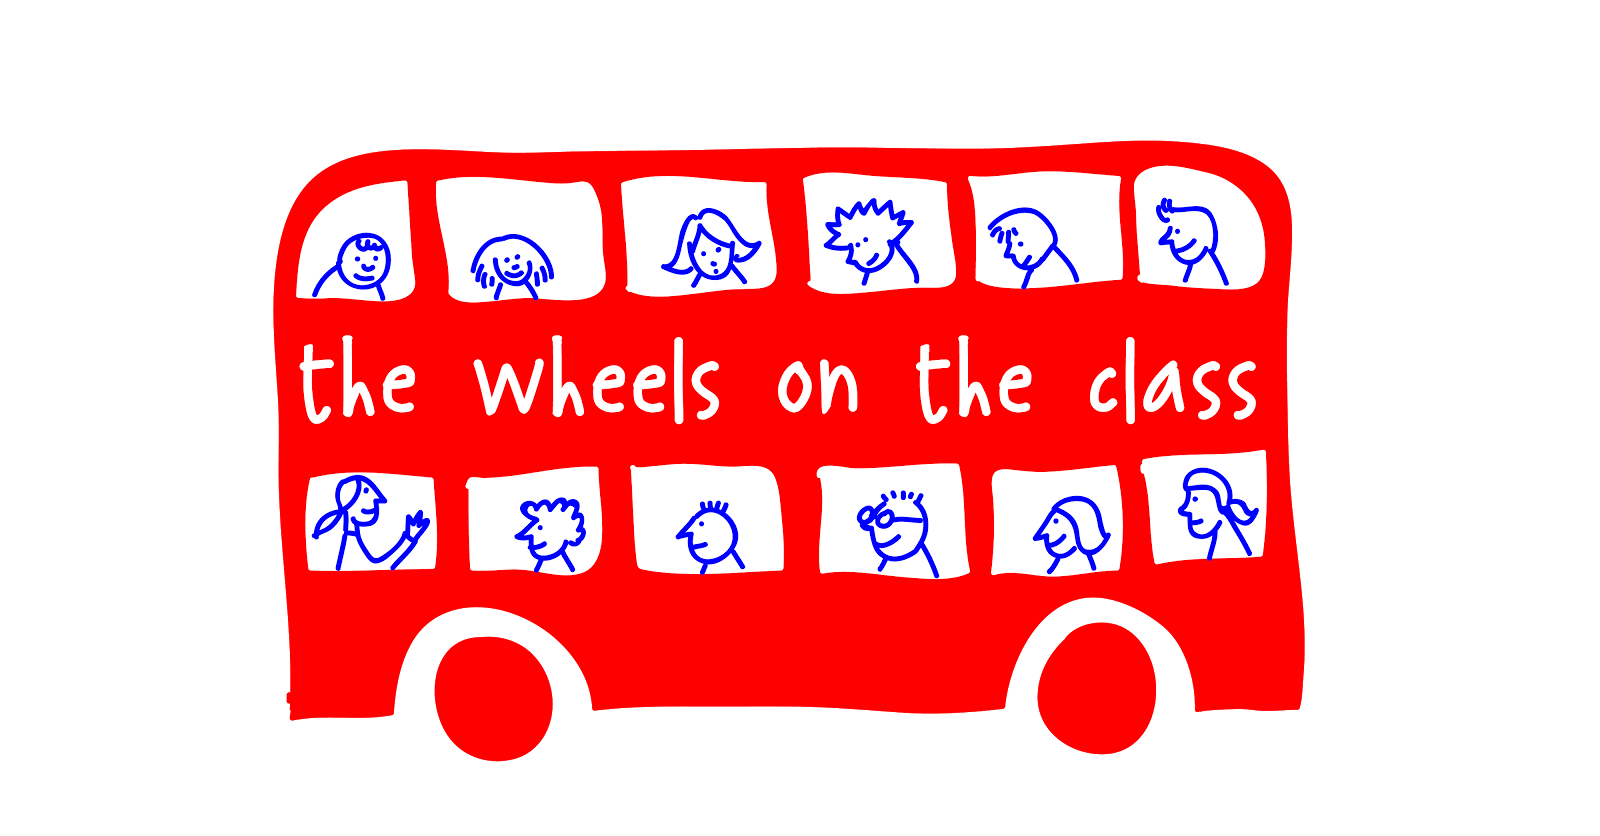 English clipart love english. Thewheelsontheclass i really useful